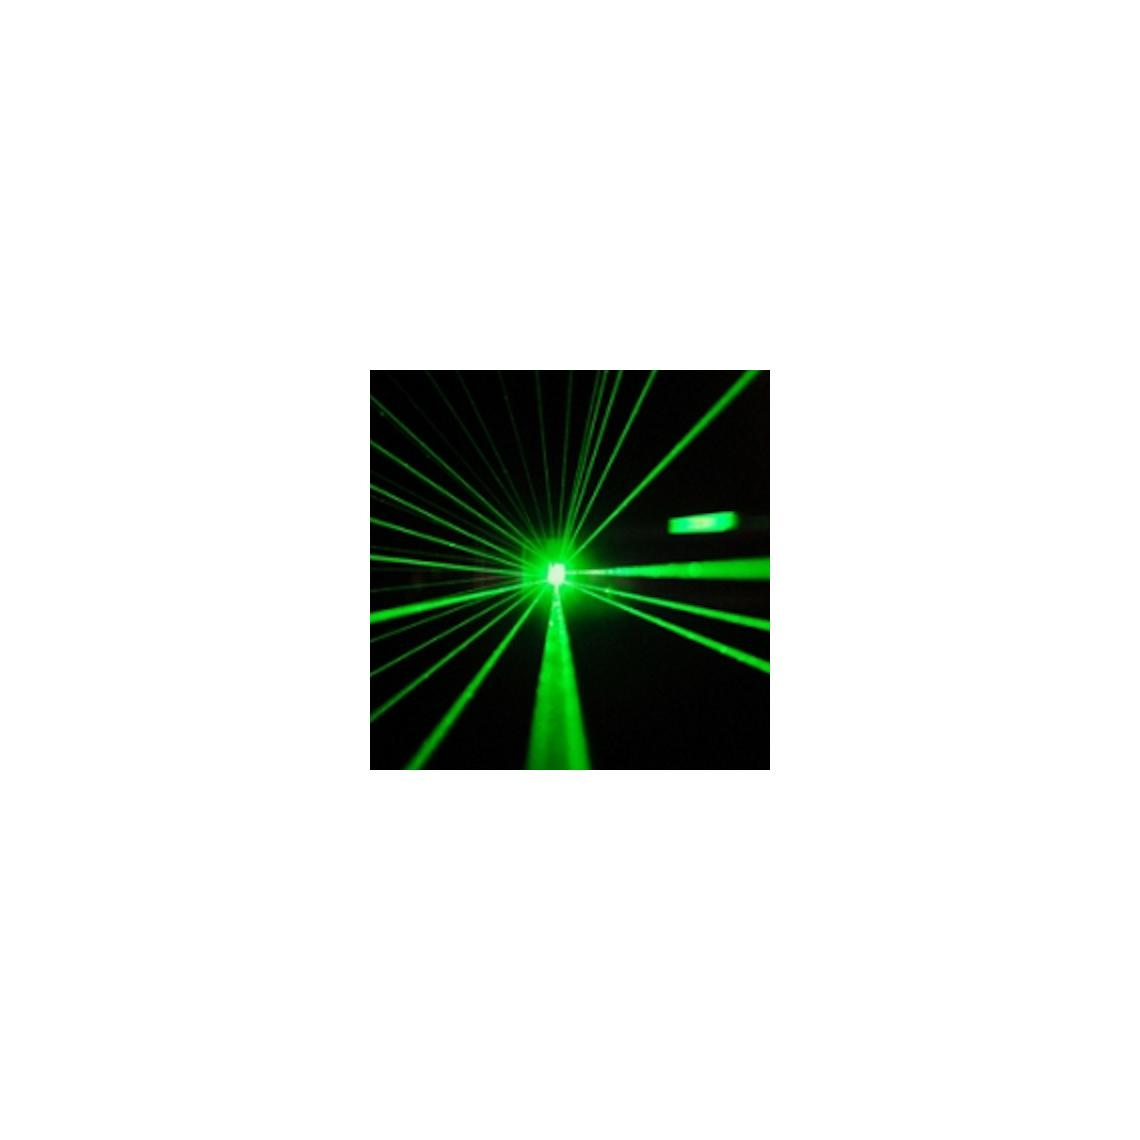 November 2016 Page 2 Swyp Dental Theus Green Laser Pointer Can Therapy Accelerate Orthodontic Tooth Movement